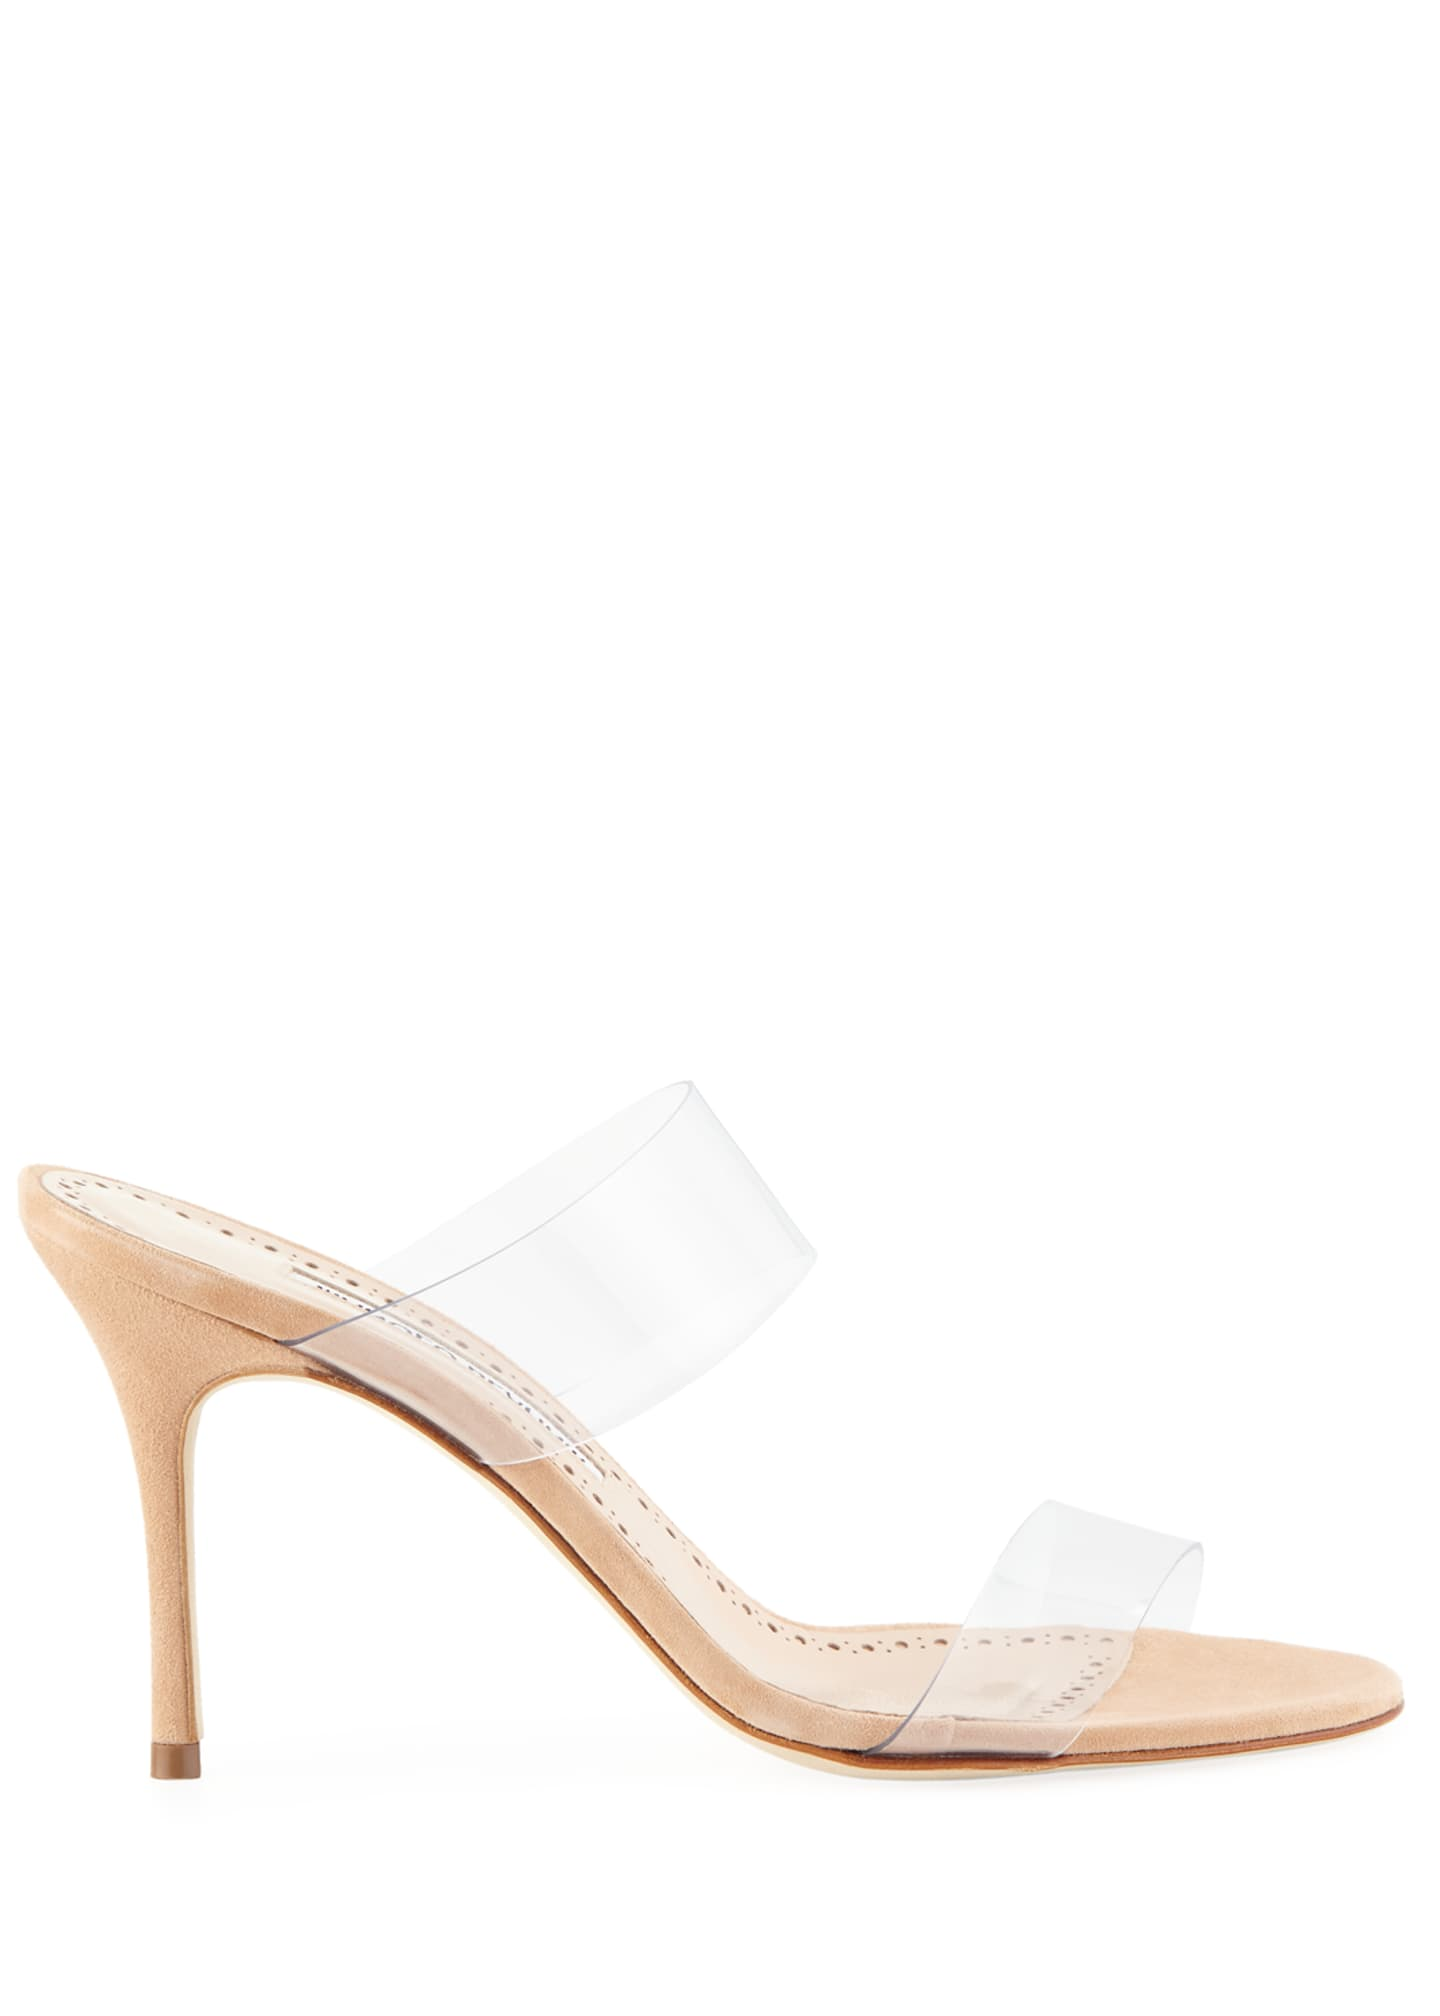 Image 3 of 6: Scolto PVC Two-Strap Sandals